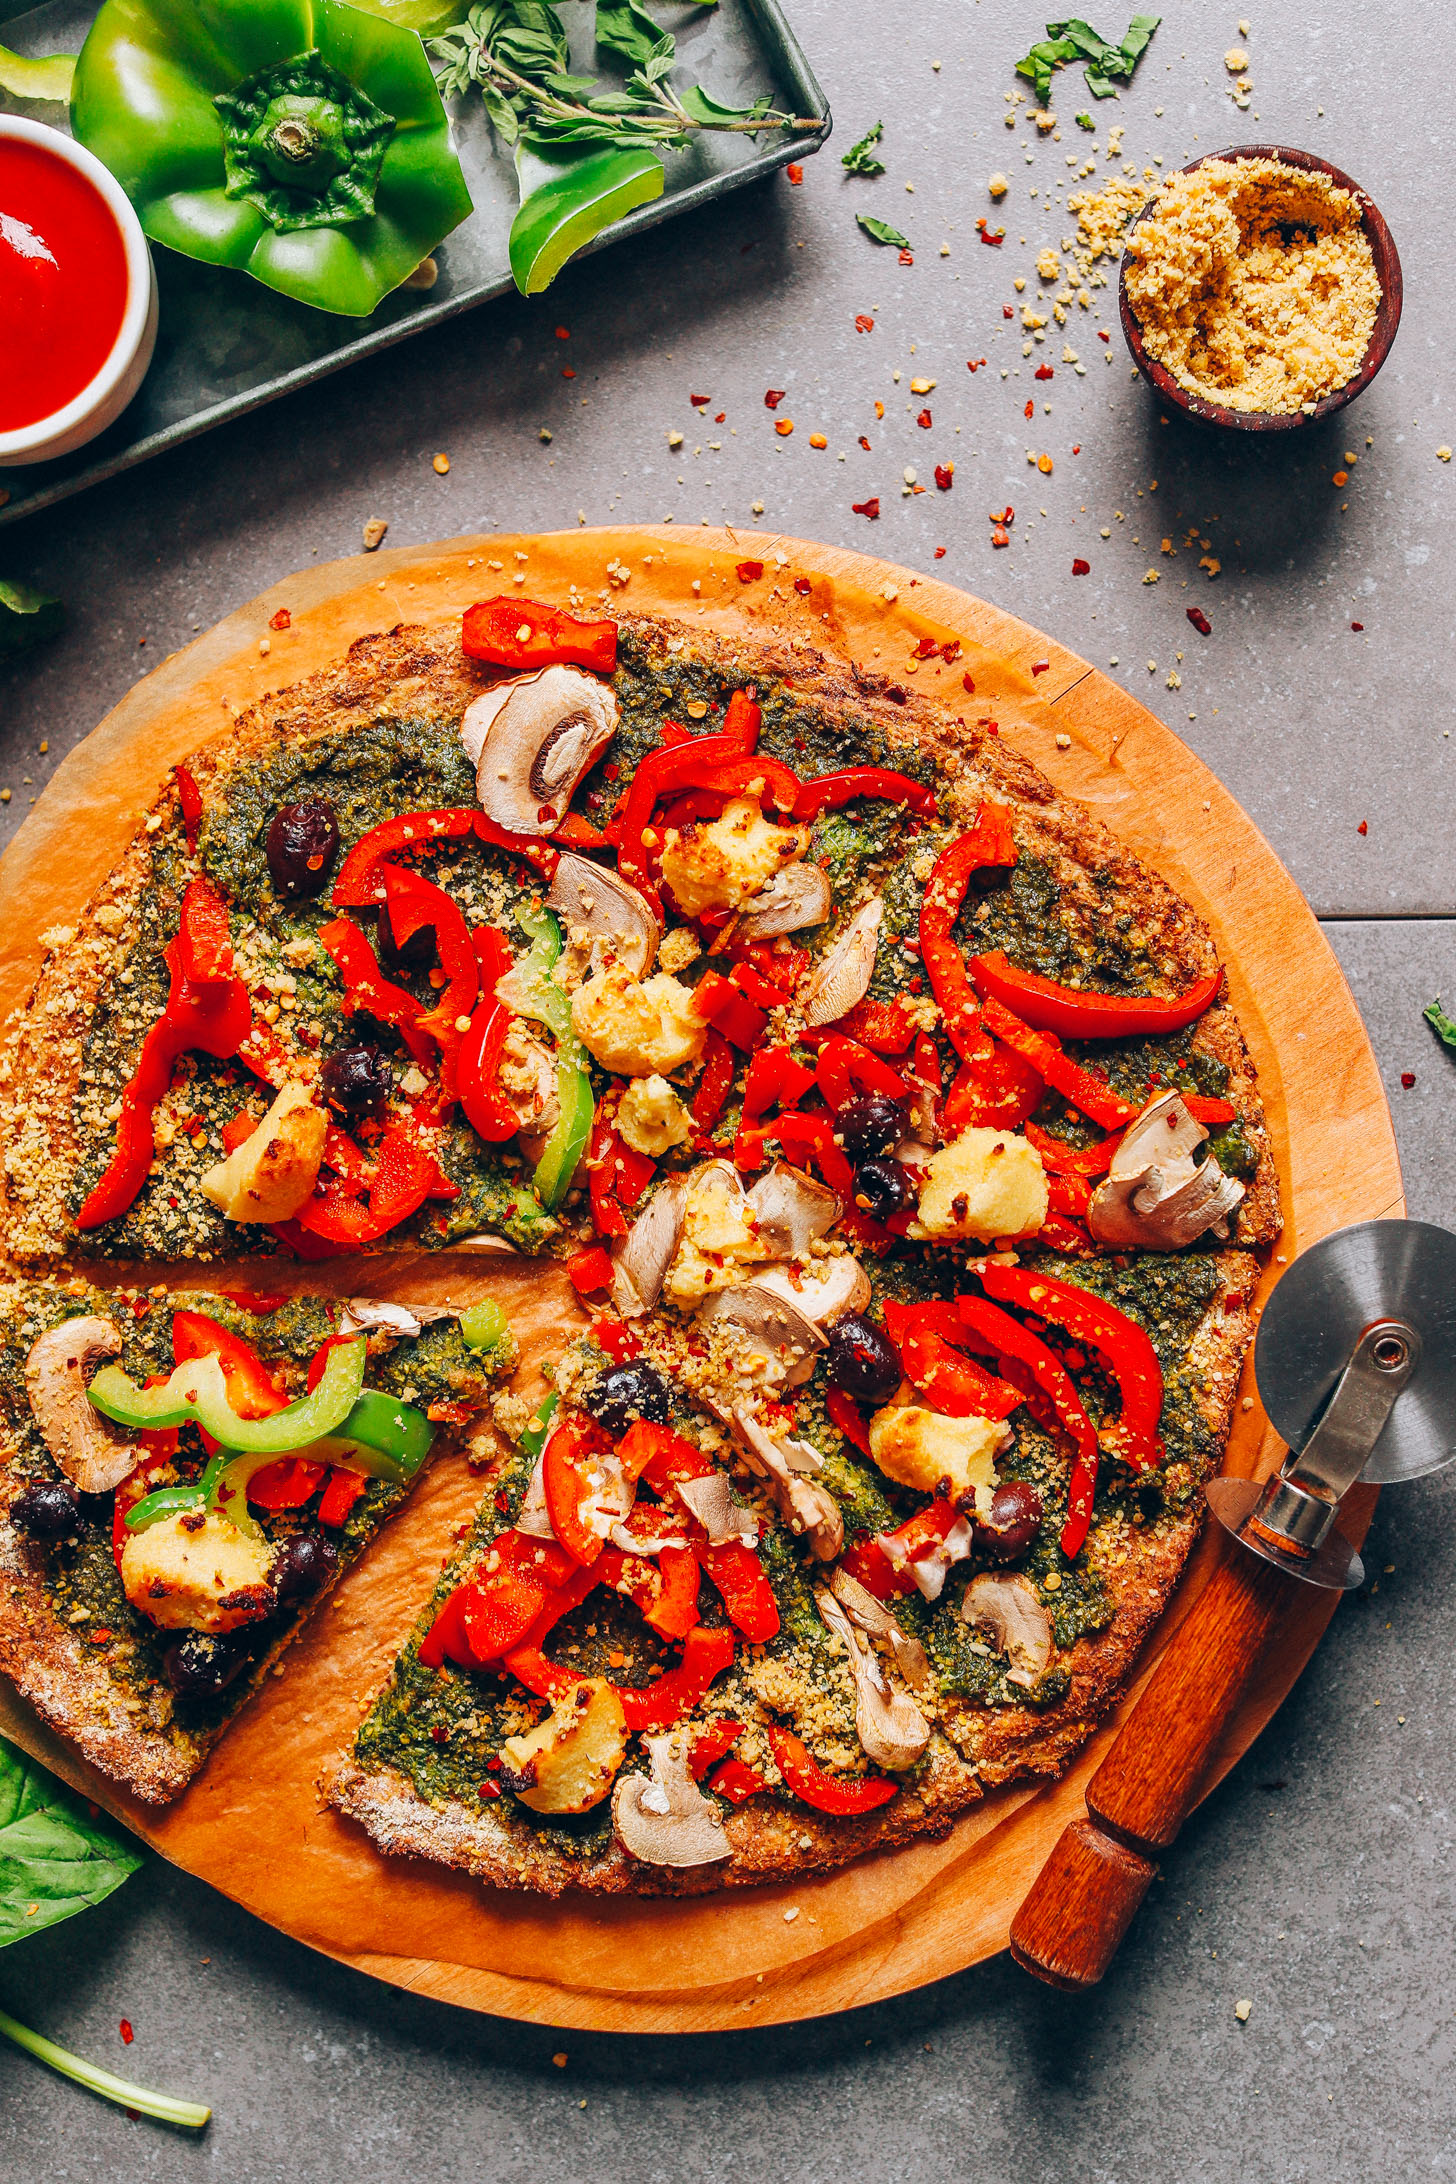 Sliced vegan gluten-free pizza made with a cauliflower crust